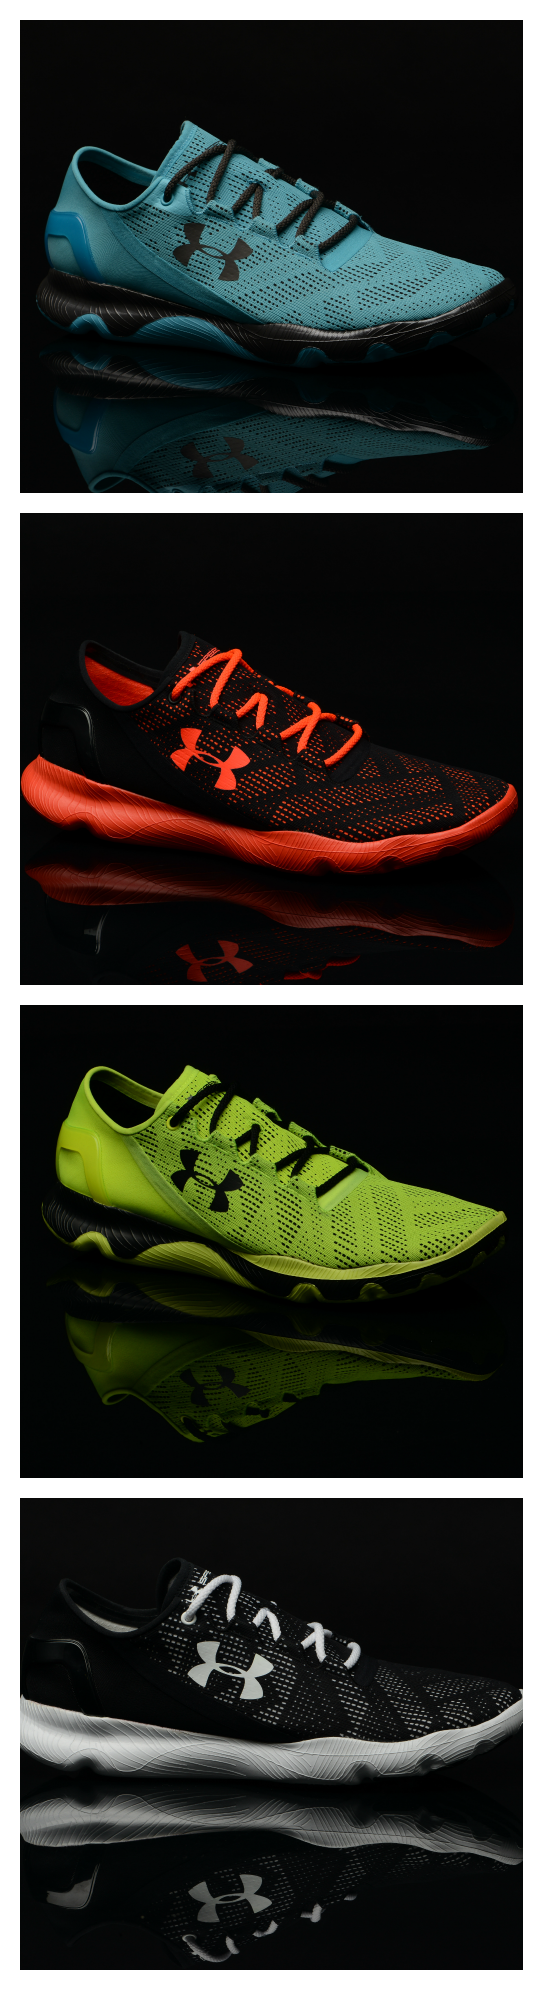 Run With Style In Every Stride The Under Armour Speedform